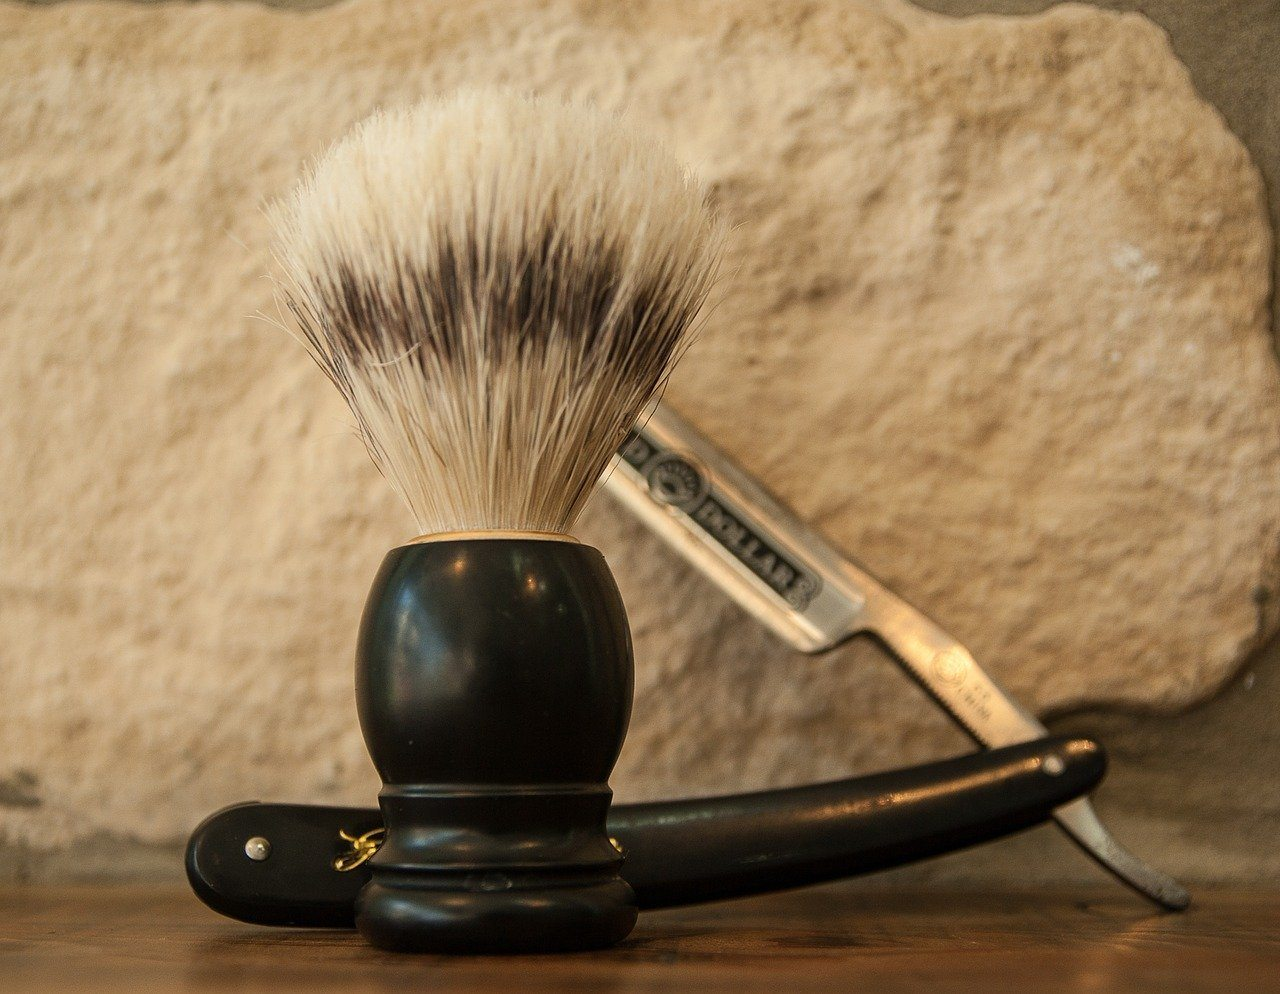 shaving brush and a straight razor